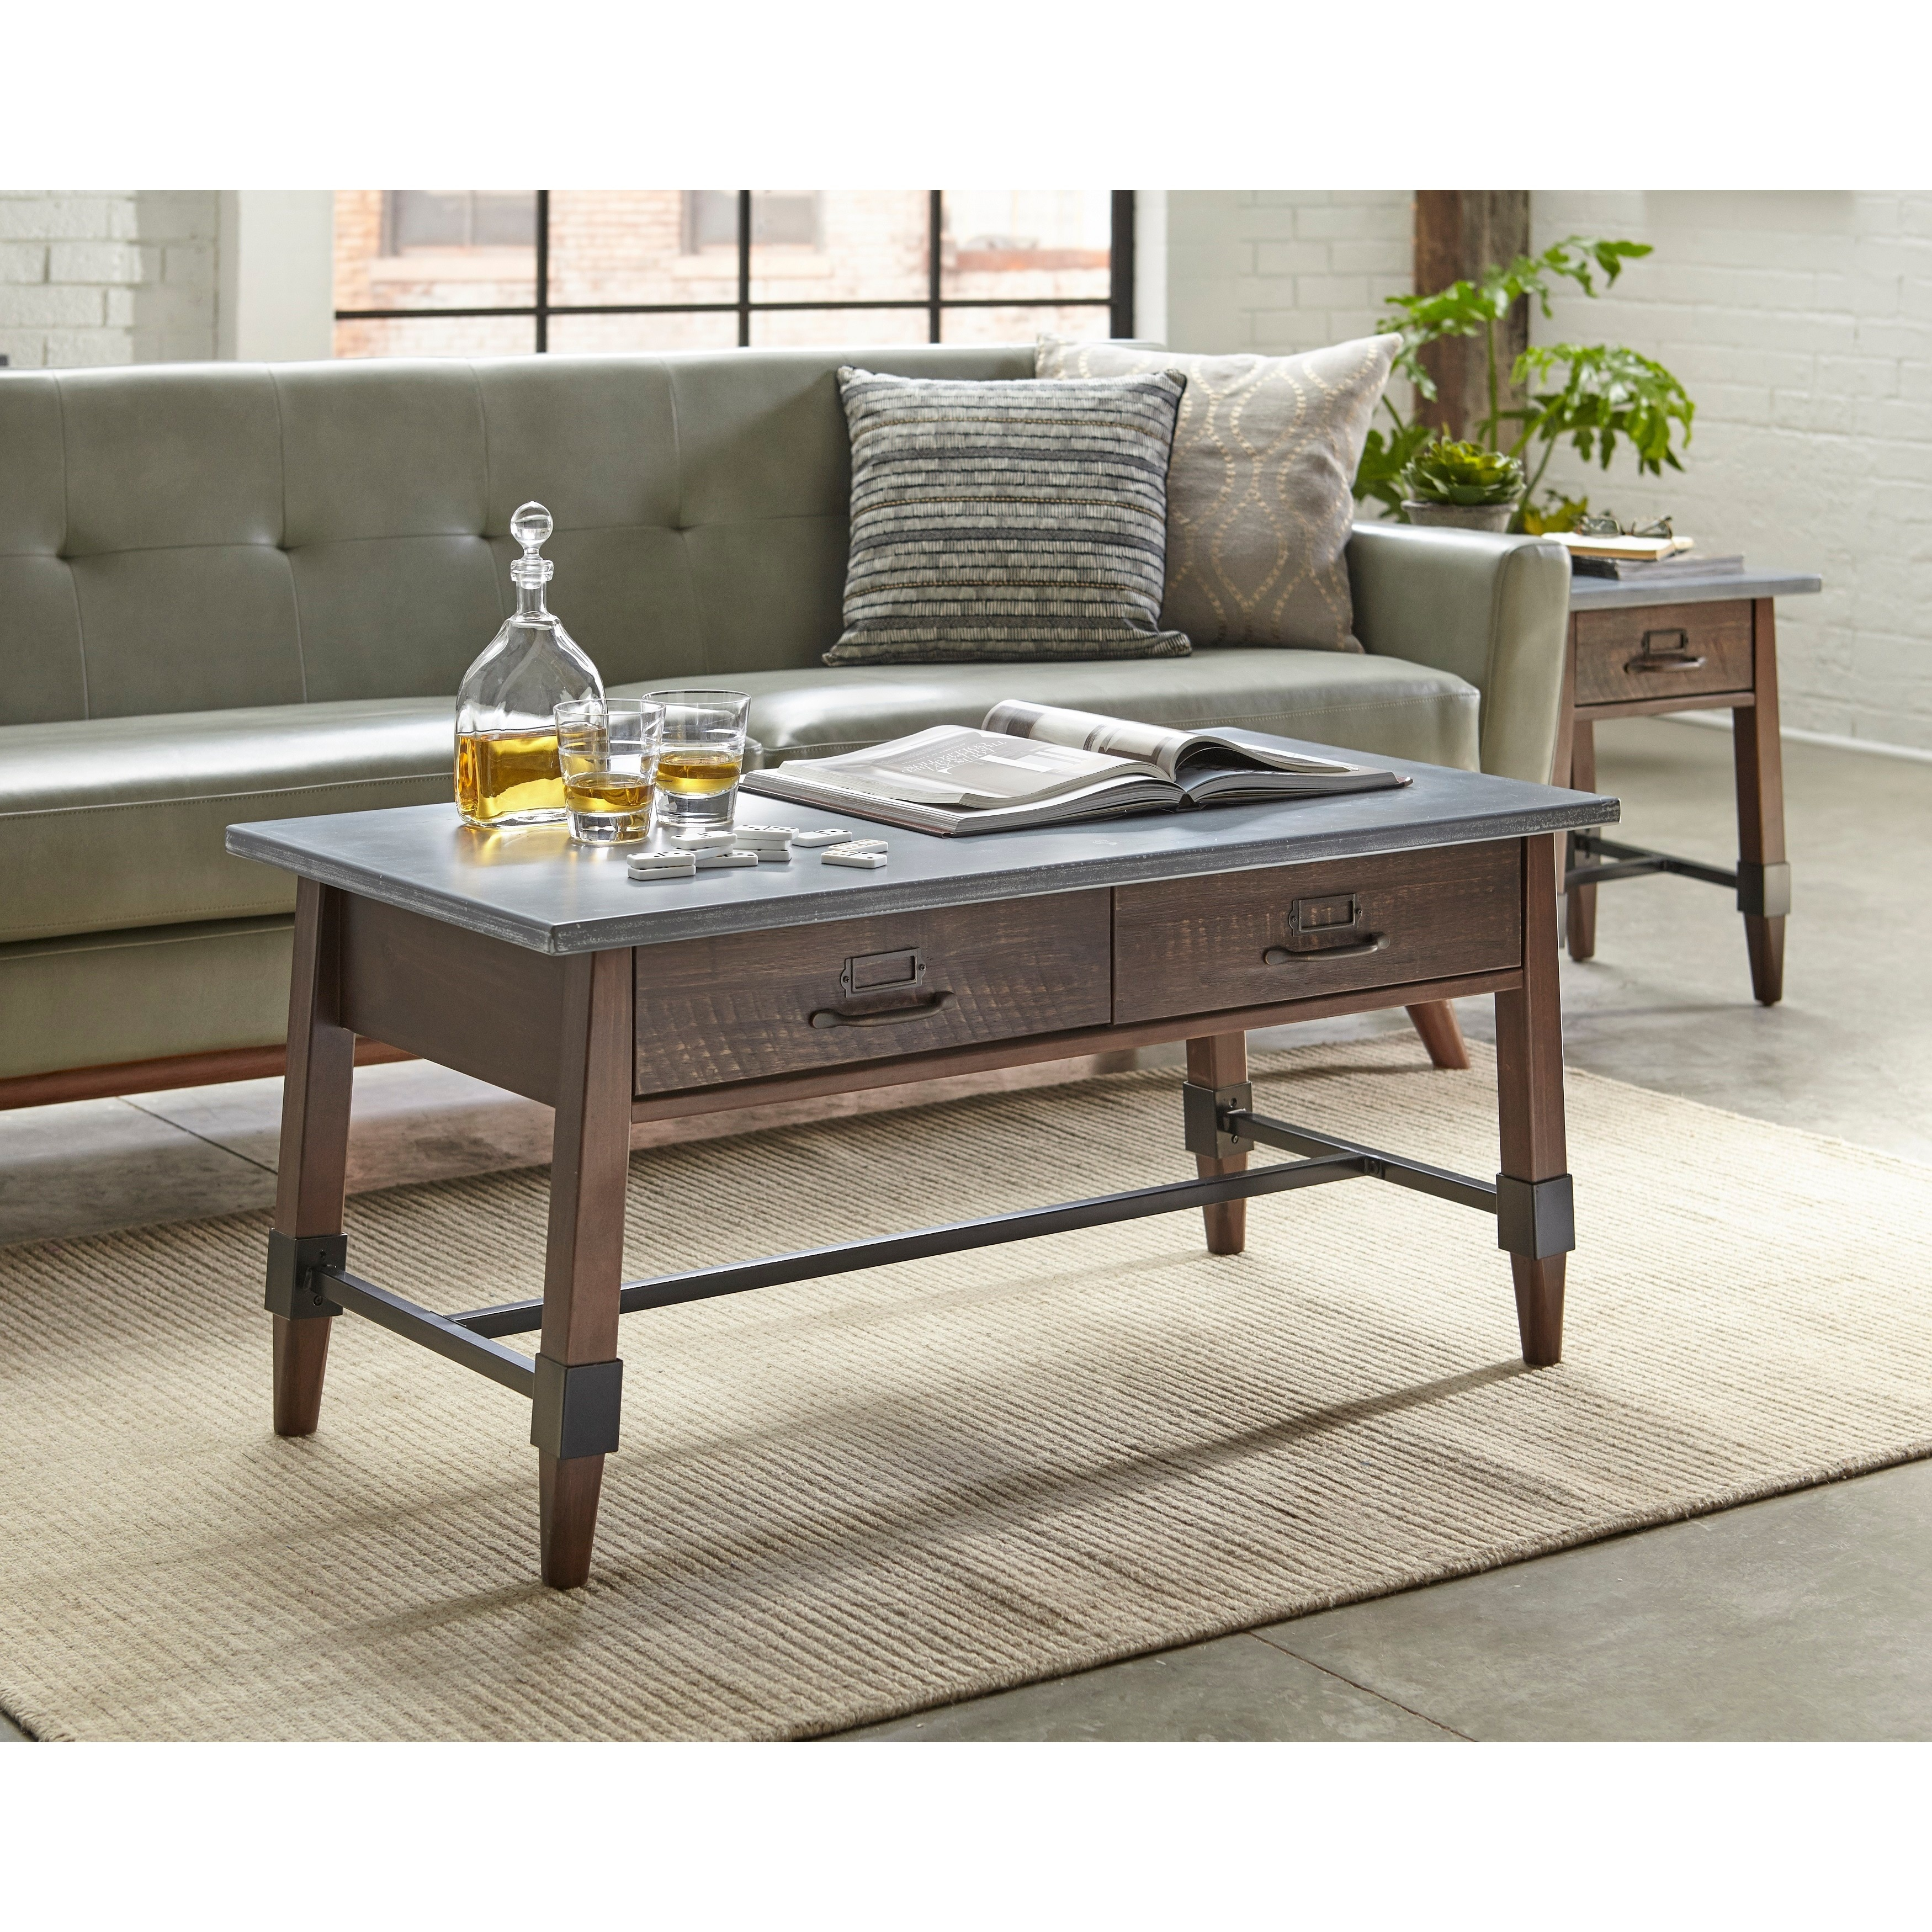 - Shop Simple Living Clint Coffee Table - Overstock - 19484774